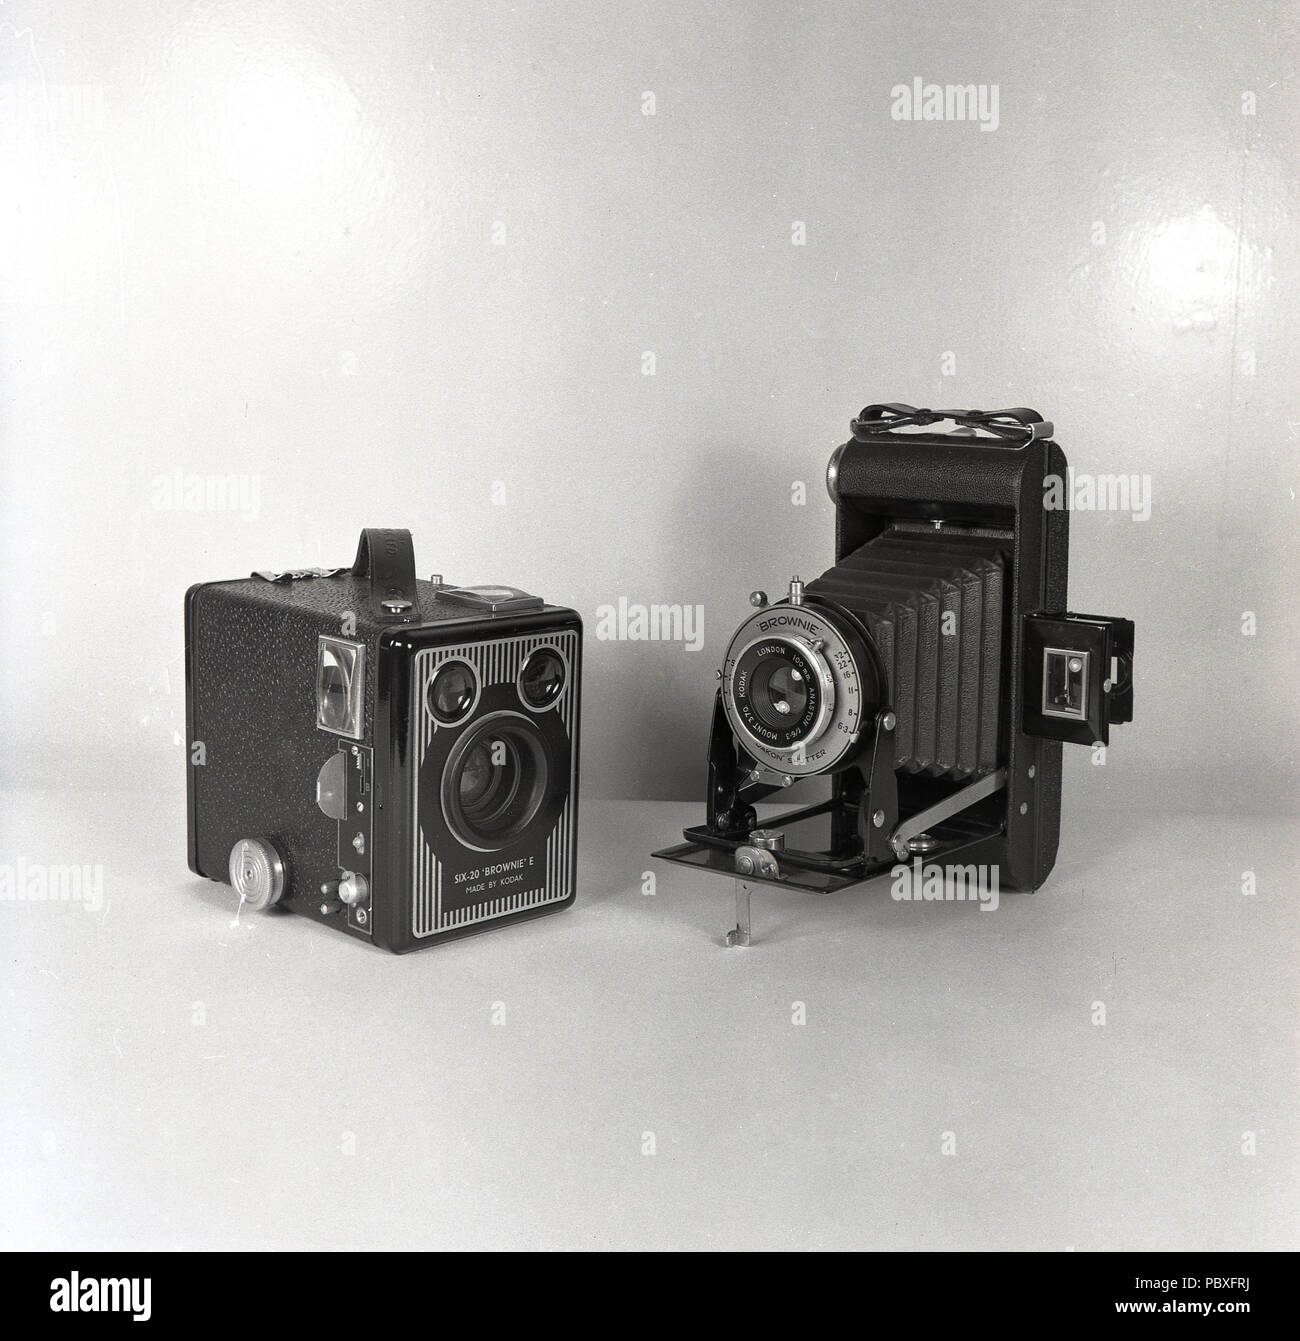 1950s, historical, picture shows two of the most popular amateur film cameras of the era, a Kodak 'Brownie' box camera and a folding medium format camera. - Stock Image